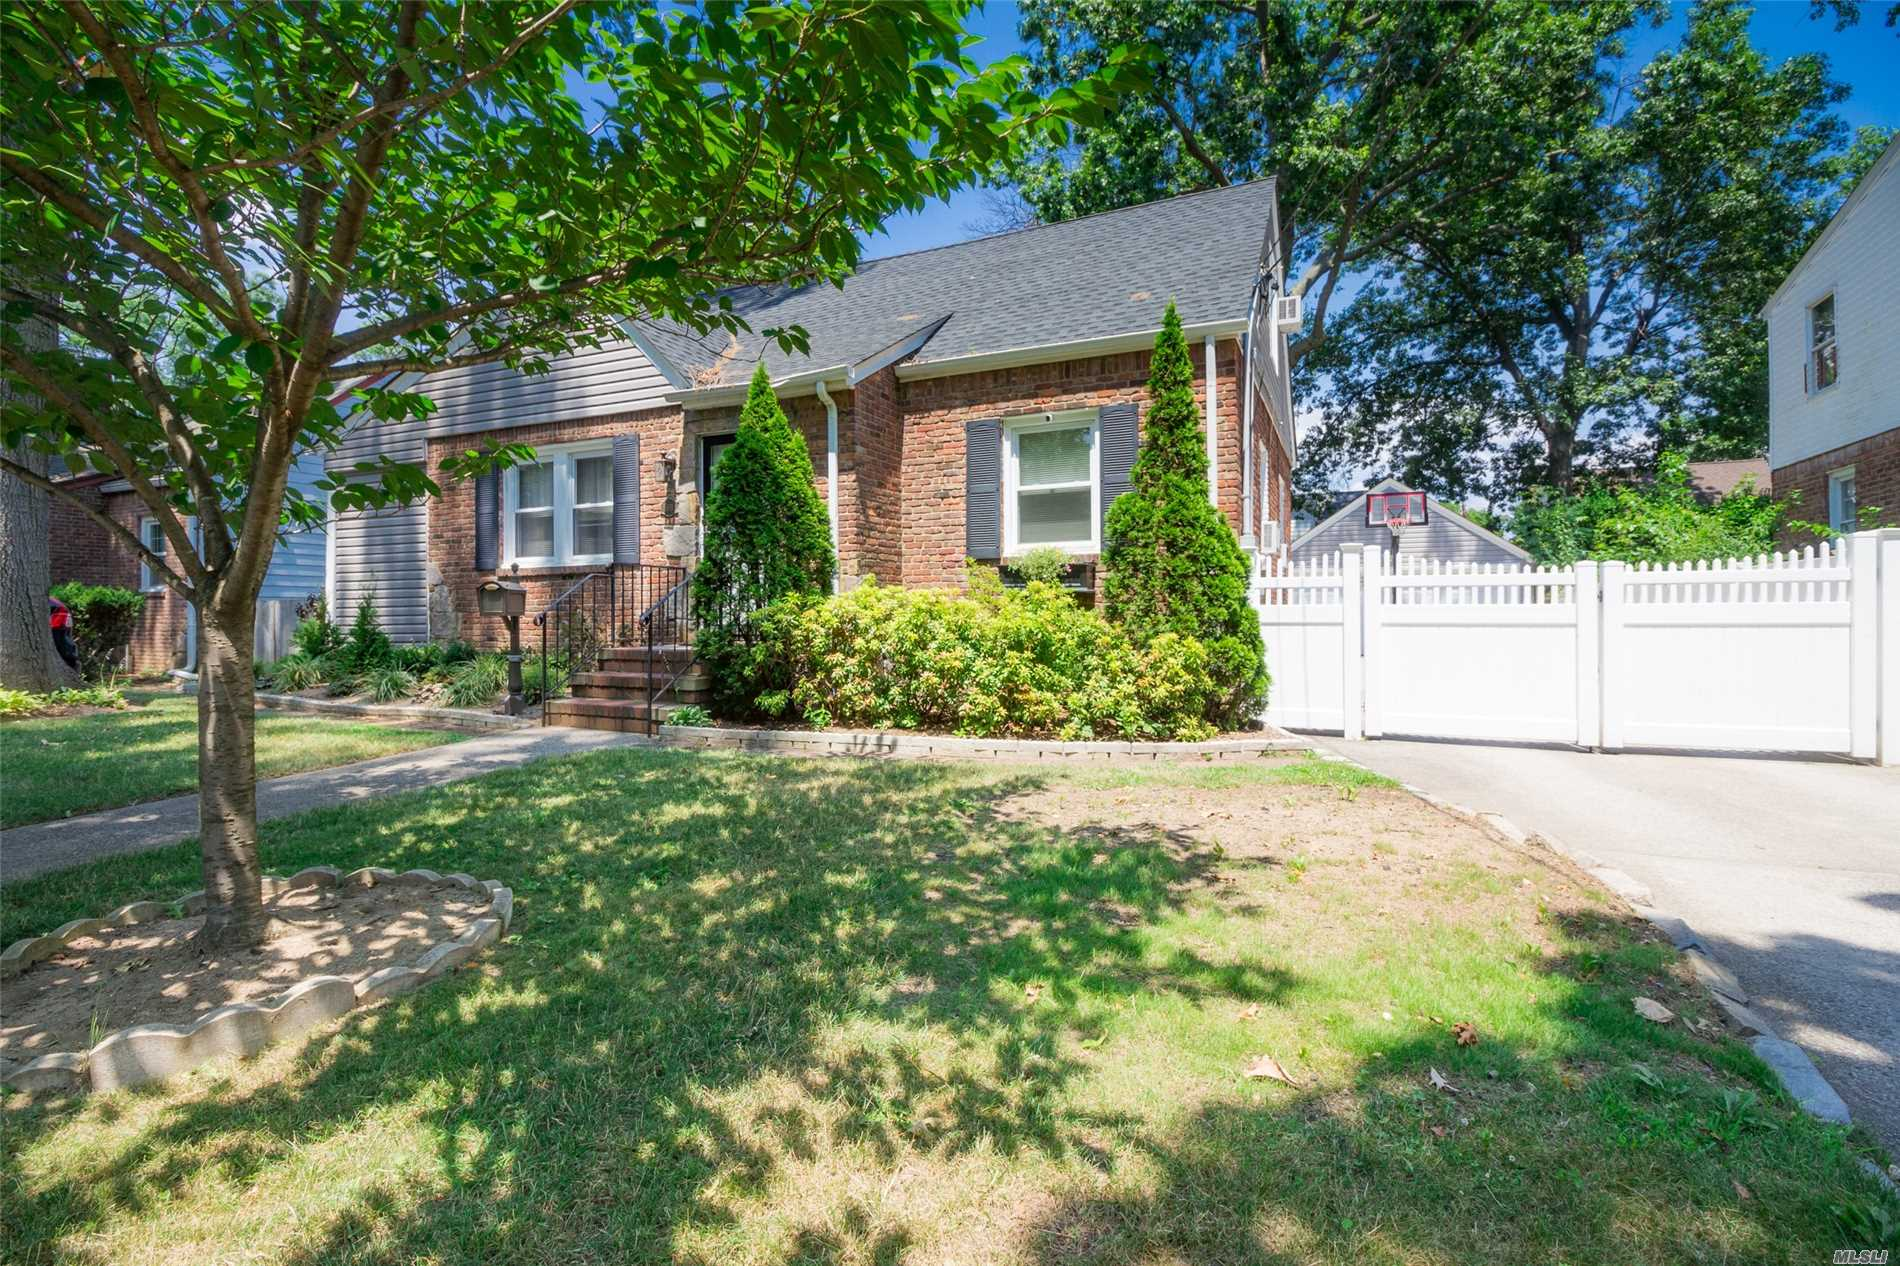 Warm And Inviting, Spacious Cape Home On A Quiet, Tree- Lined Street Near Fireman's Field. The Home Features A Wood Burning Stone Fireplace In The Living Room, Updated Kitchen With Stainless Steel Appliances, Family Room, Large Pantry Off The Kitchen, Updated 200 Amp Electric And Much More. Come See For Yourself